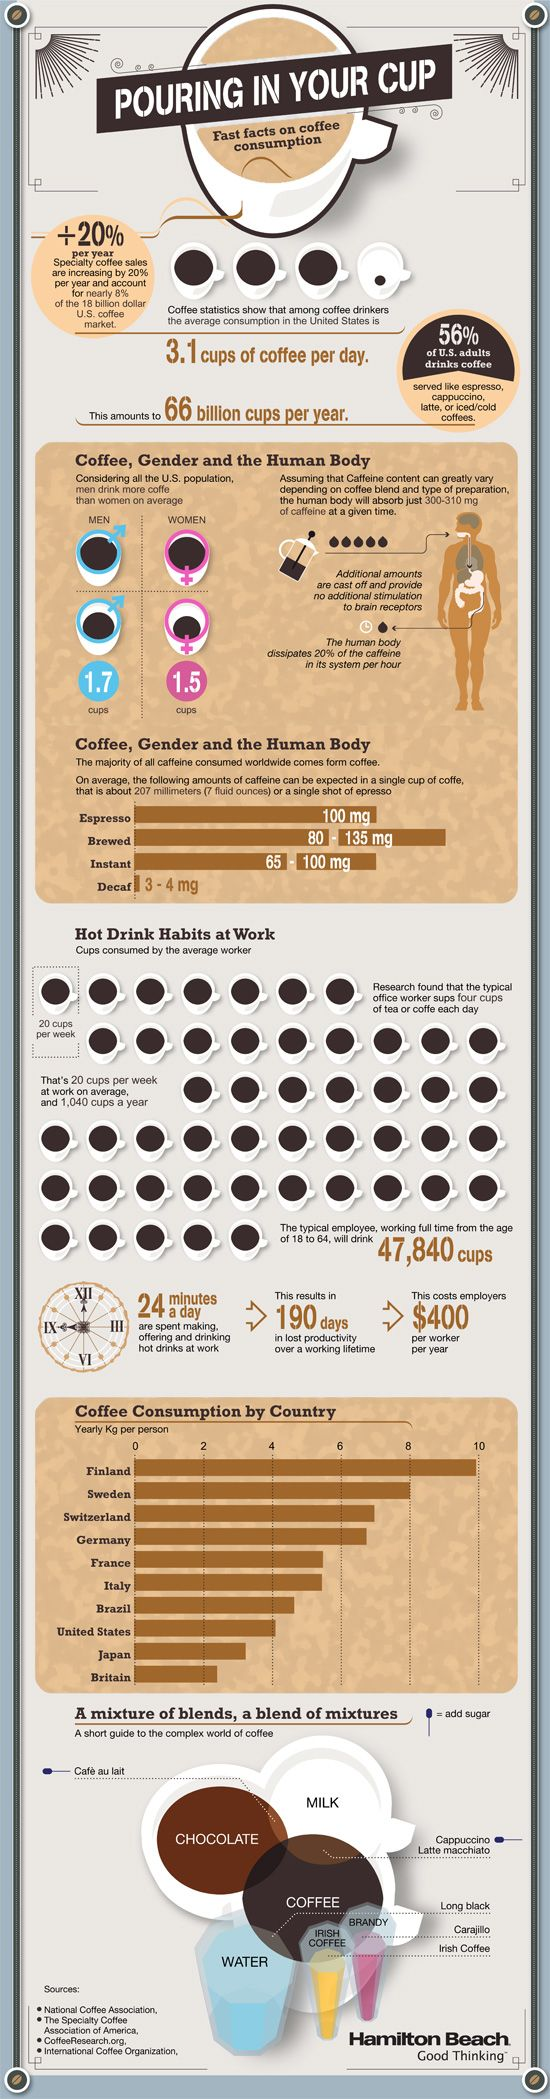 Fast Facts on Coffee Drinking